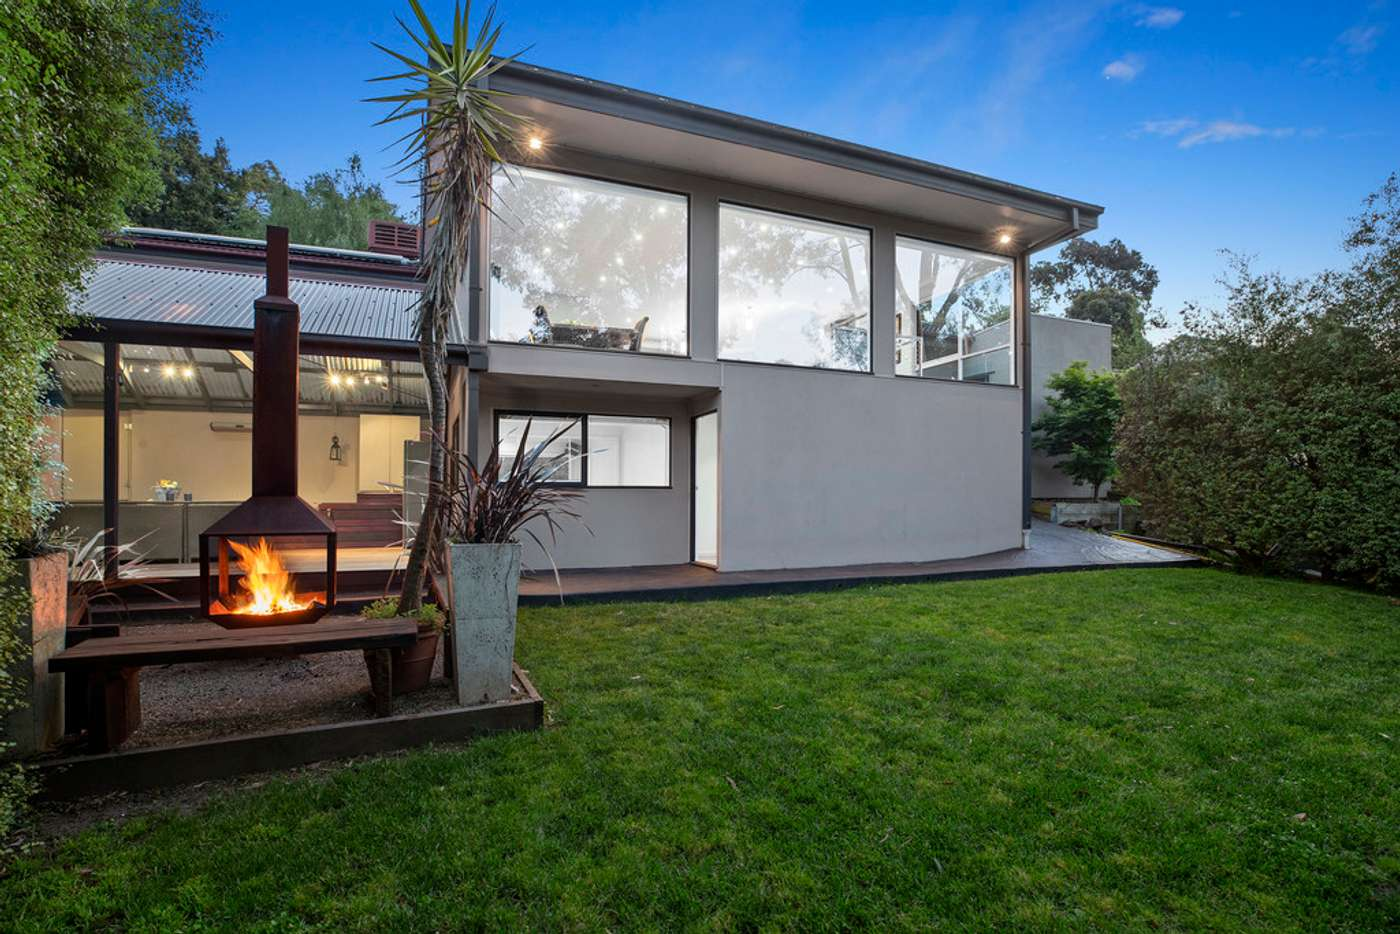 Main view of Homely house listing, 19 Bates Avenue, Upper Ferntree Gully VIC 3156